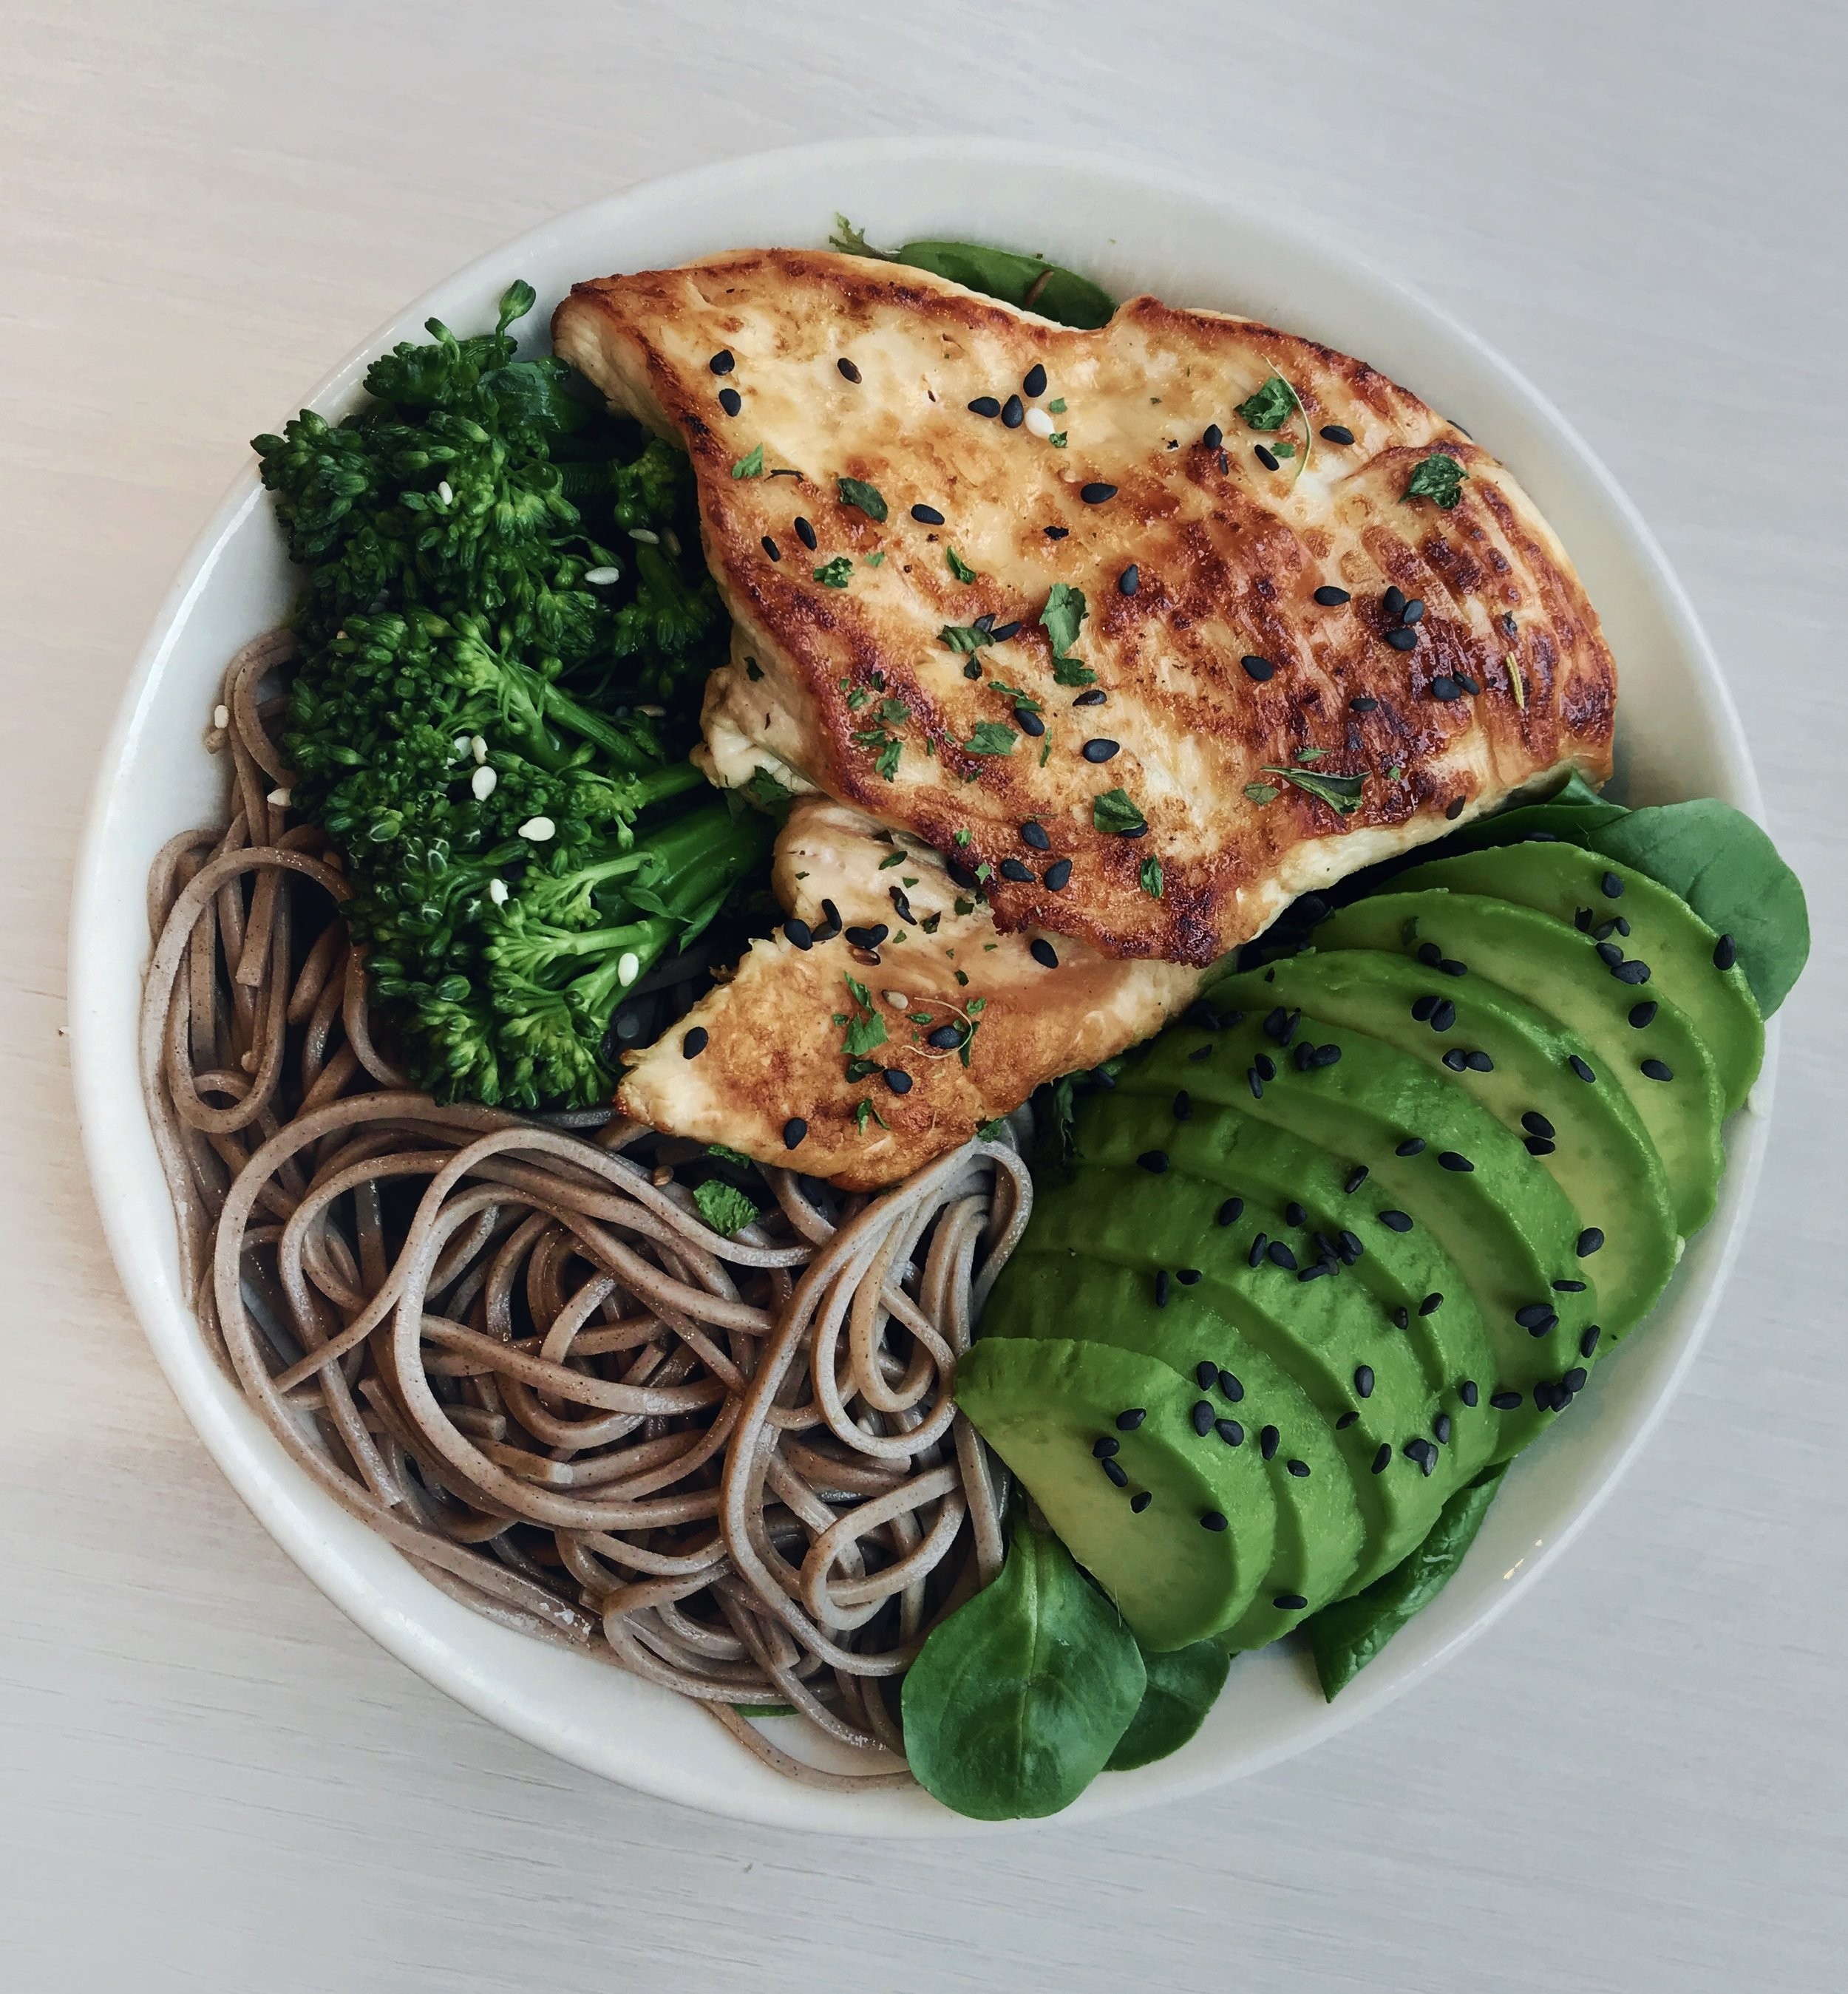 Grilled Herb Chicken, Noodles, Avocado & Broccolini - Grilled chicken (cooked in @terradelyssa_frolive oil for a few minutes on each side and seasoned with cilantro) + soba noodles +@lagrandeepiceriesteamed broccolini + avocado slices +@naturalia_magasins_biosesame seeds